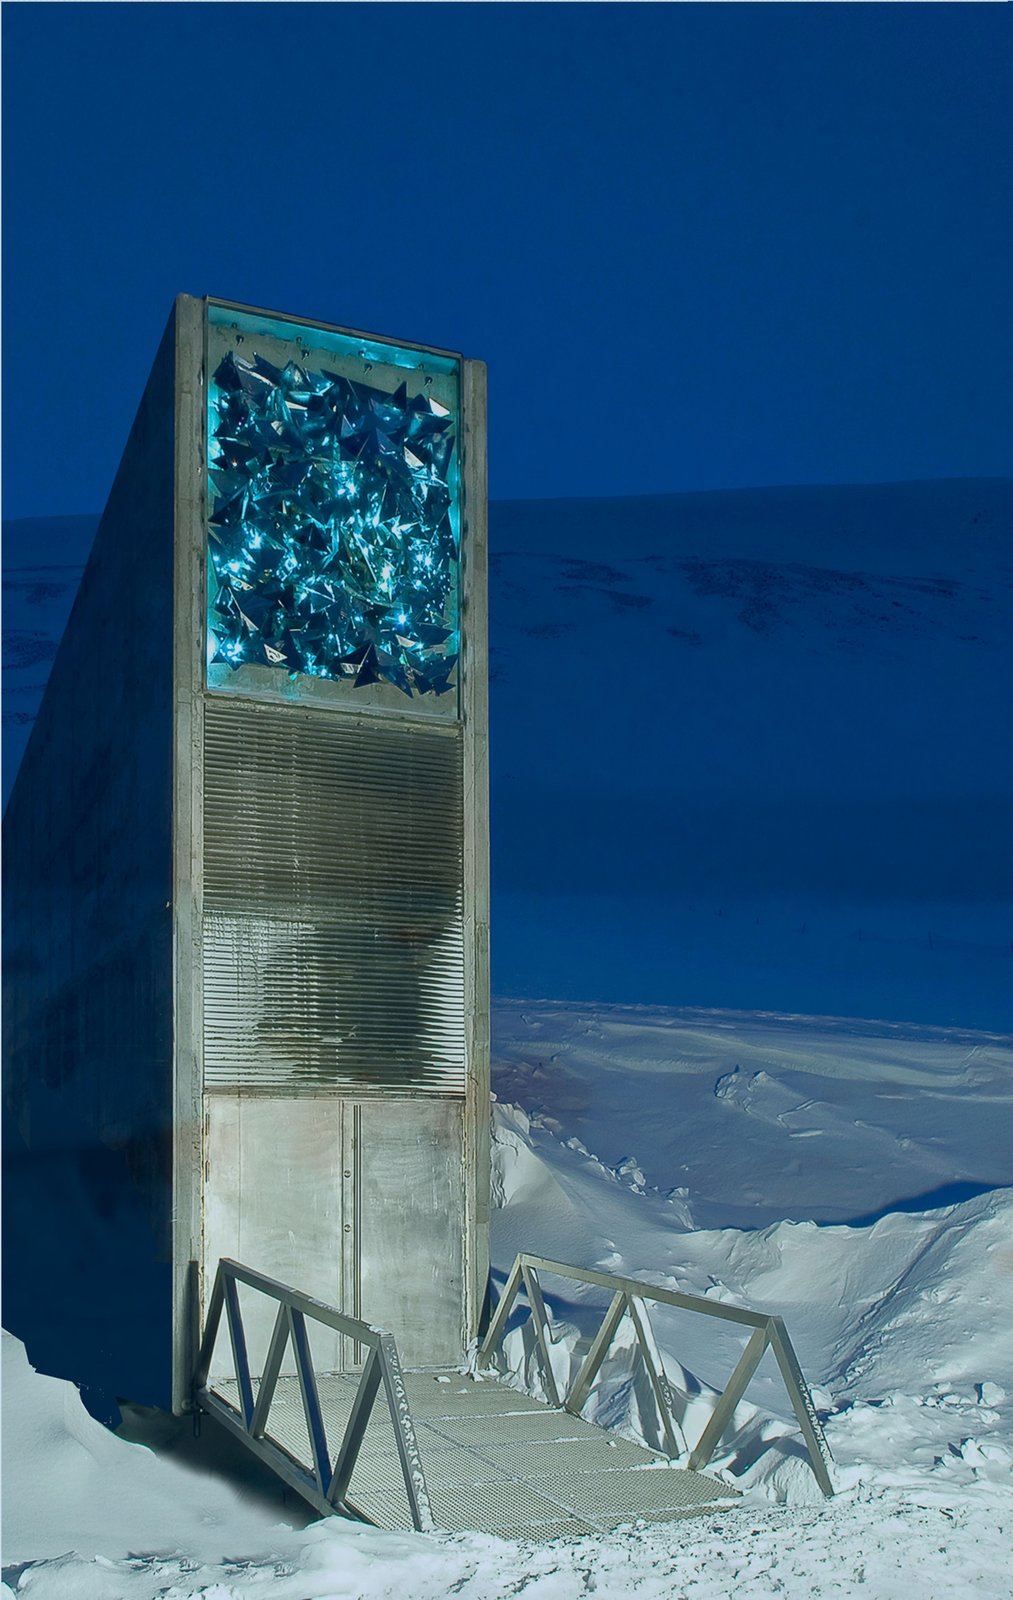 Svalbard Global Seed Vault, Svalbard, Norway, 2007. Designed by BC Arkitektur Barlindhaug Consult A.S. of Norway and Project Architect Peter Wilhelm Söderman of Finland. Photo by Jaro Hollan.  Cabins & Hideouts from Snøhetta Curates Nordic Design